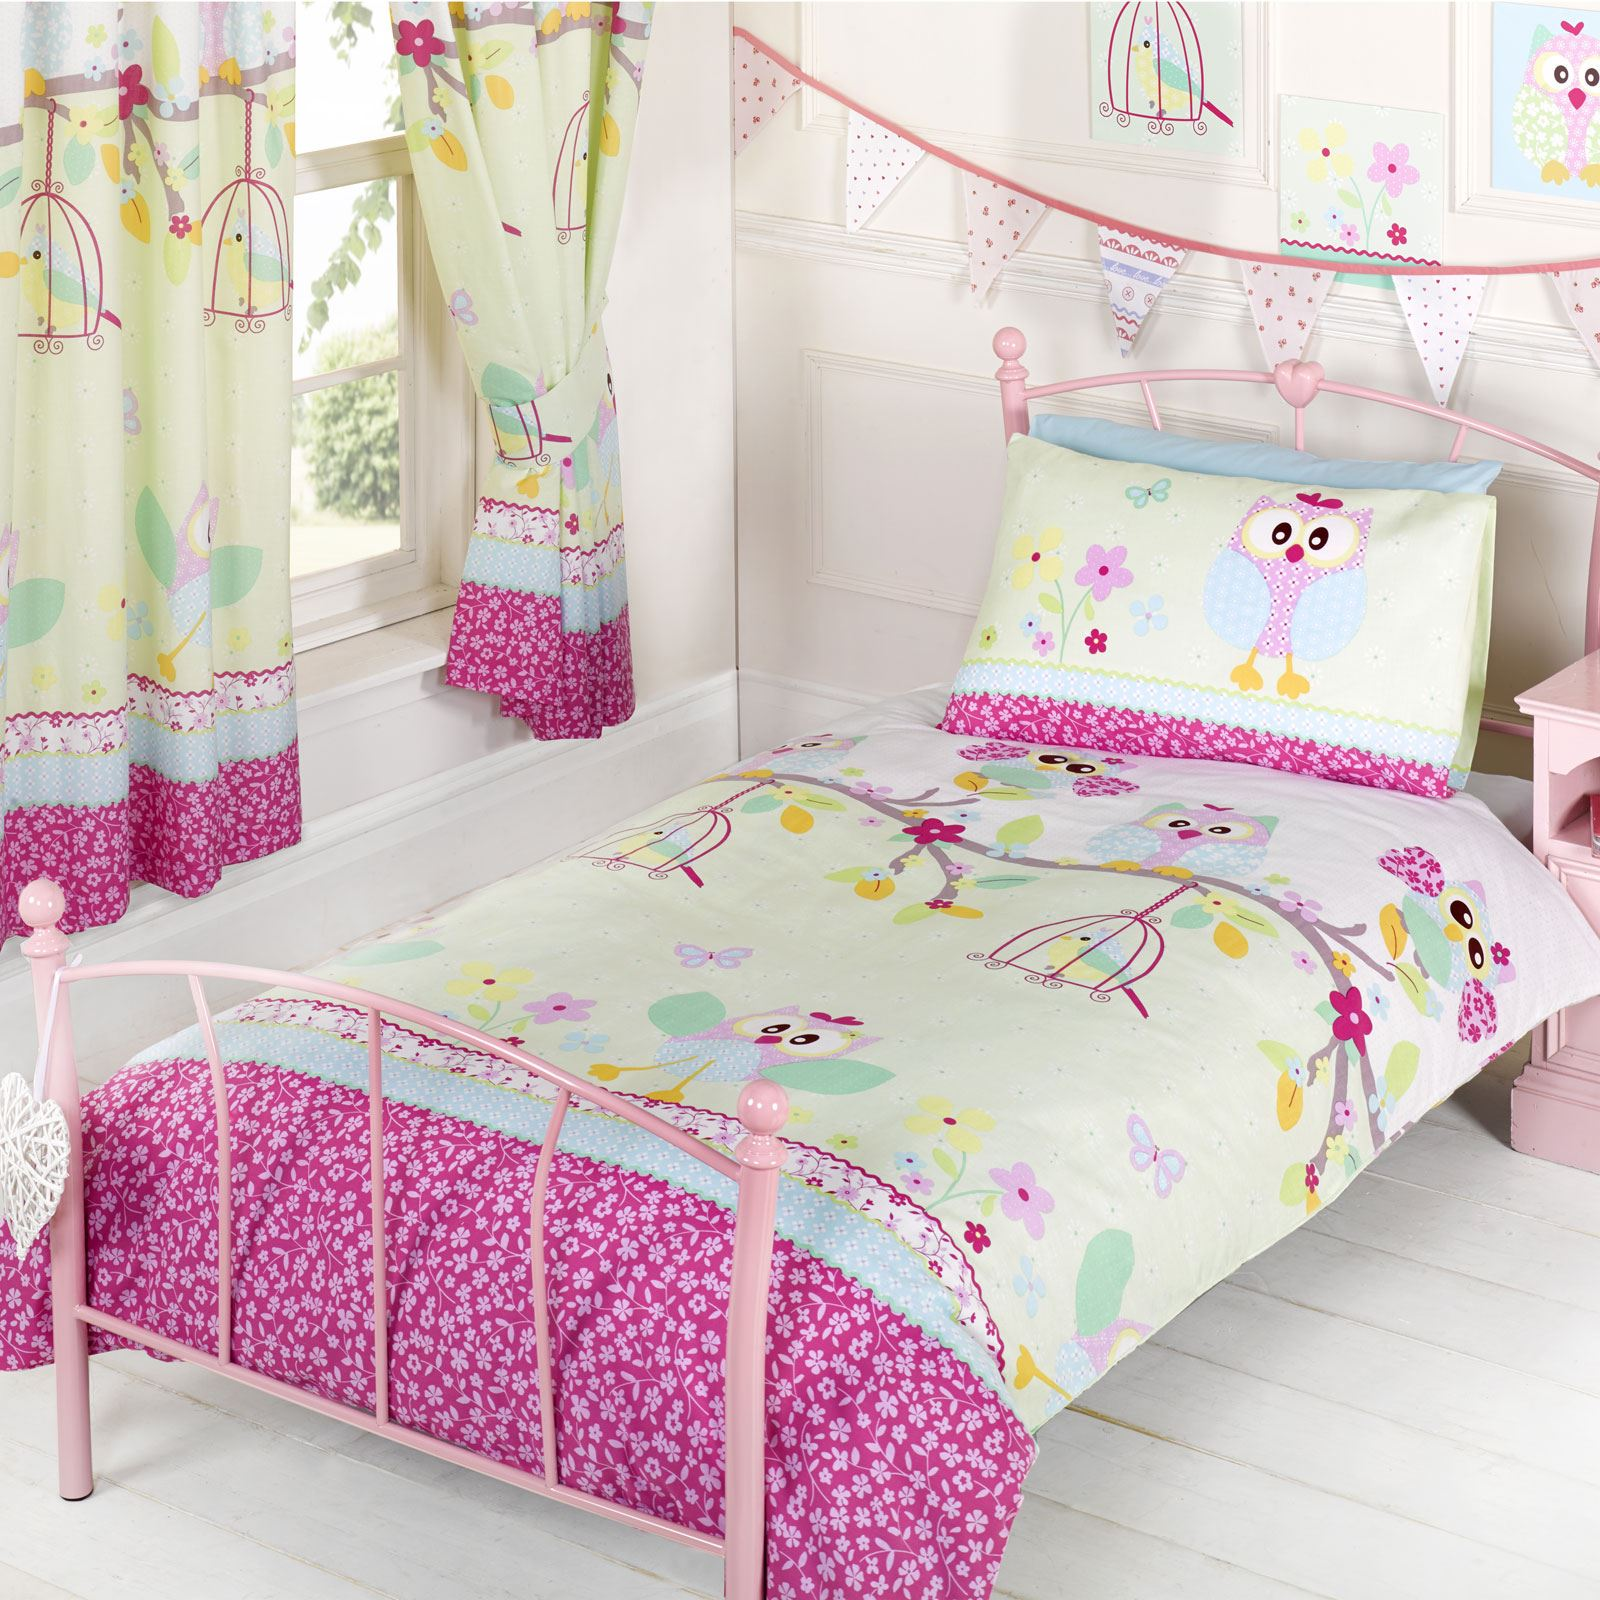 Girl Duvet Covers. If there's one thing little girls love as much as a good story at bedtime, it's snuggling up under some soft and comfy covers.